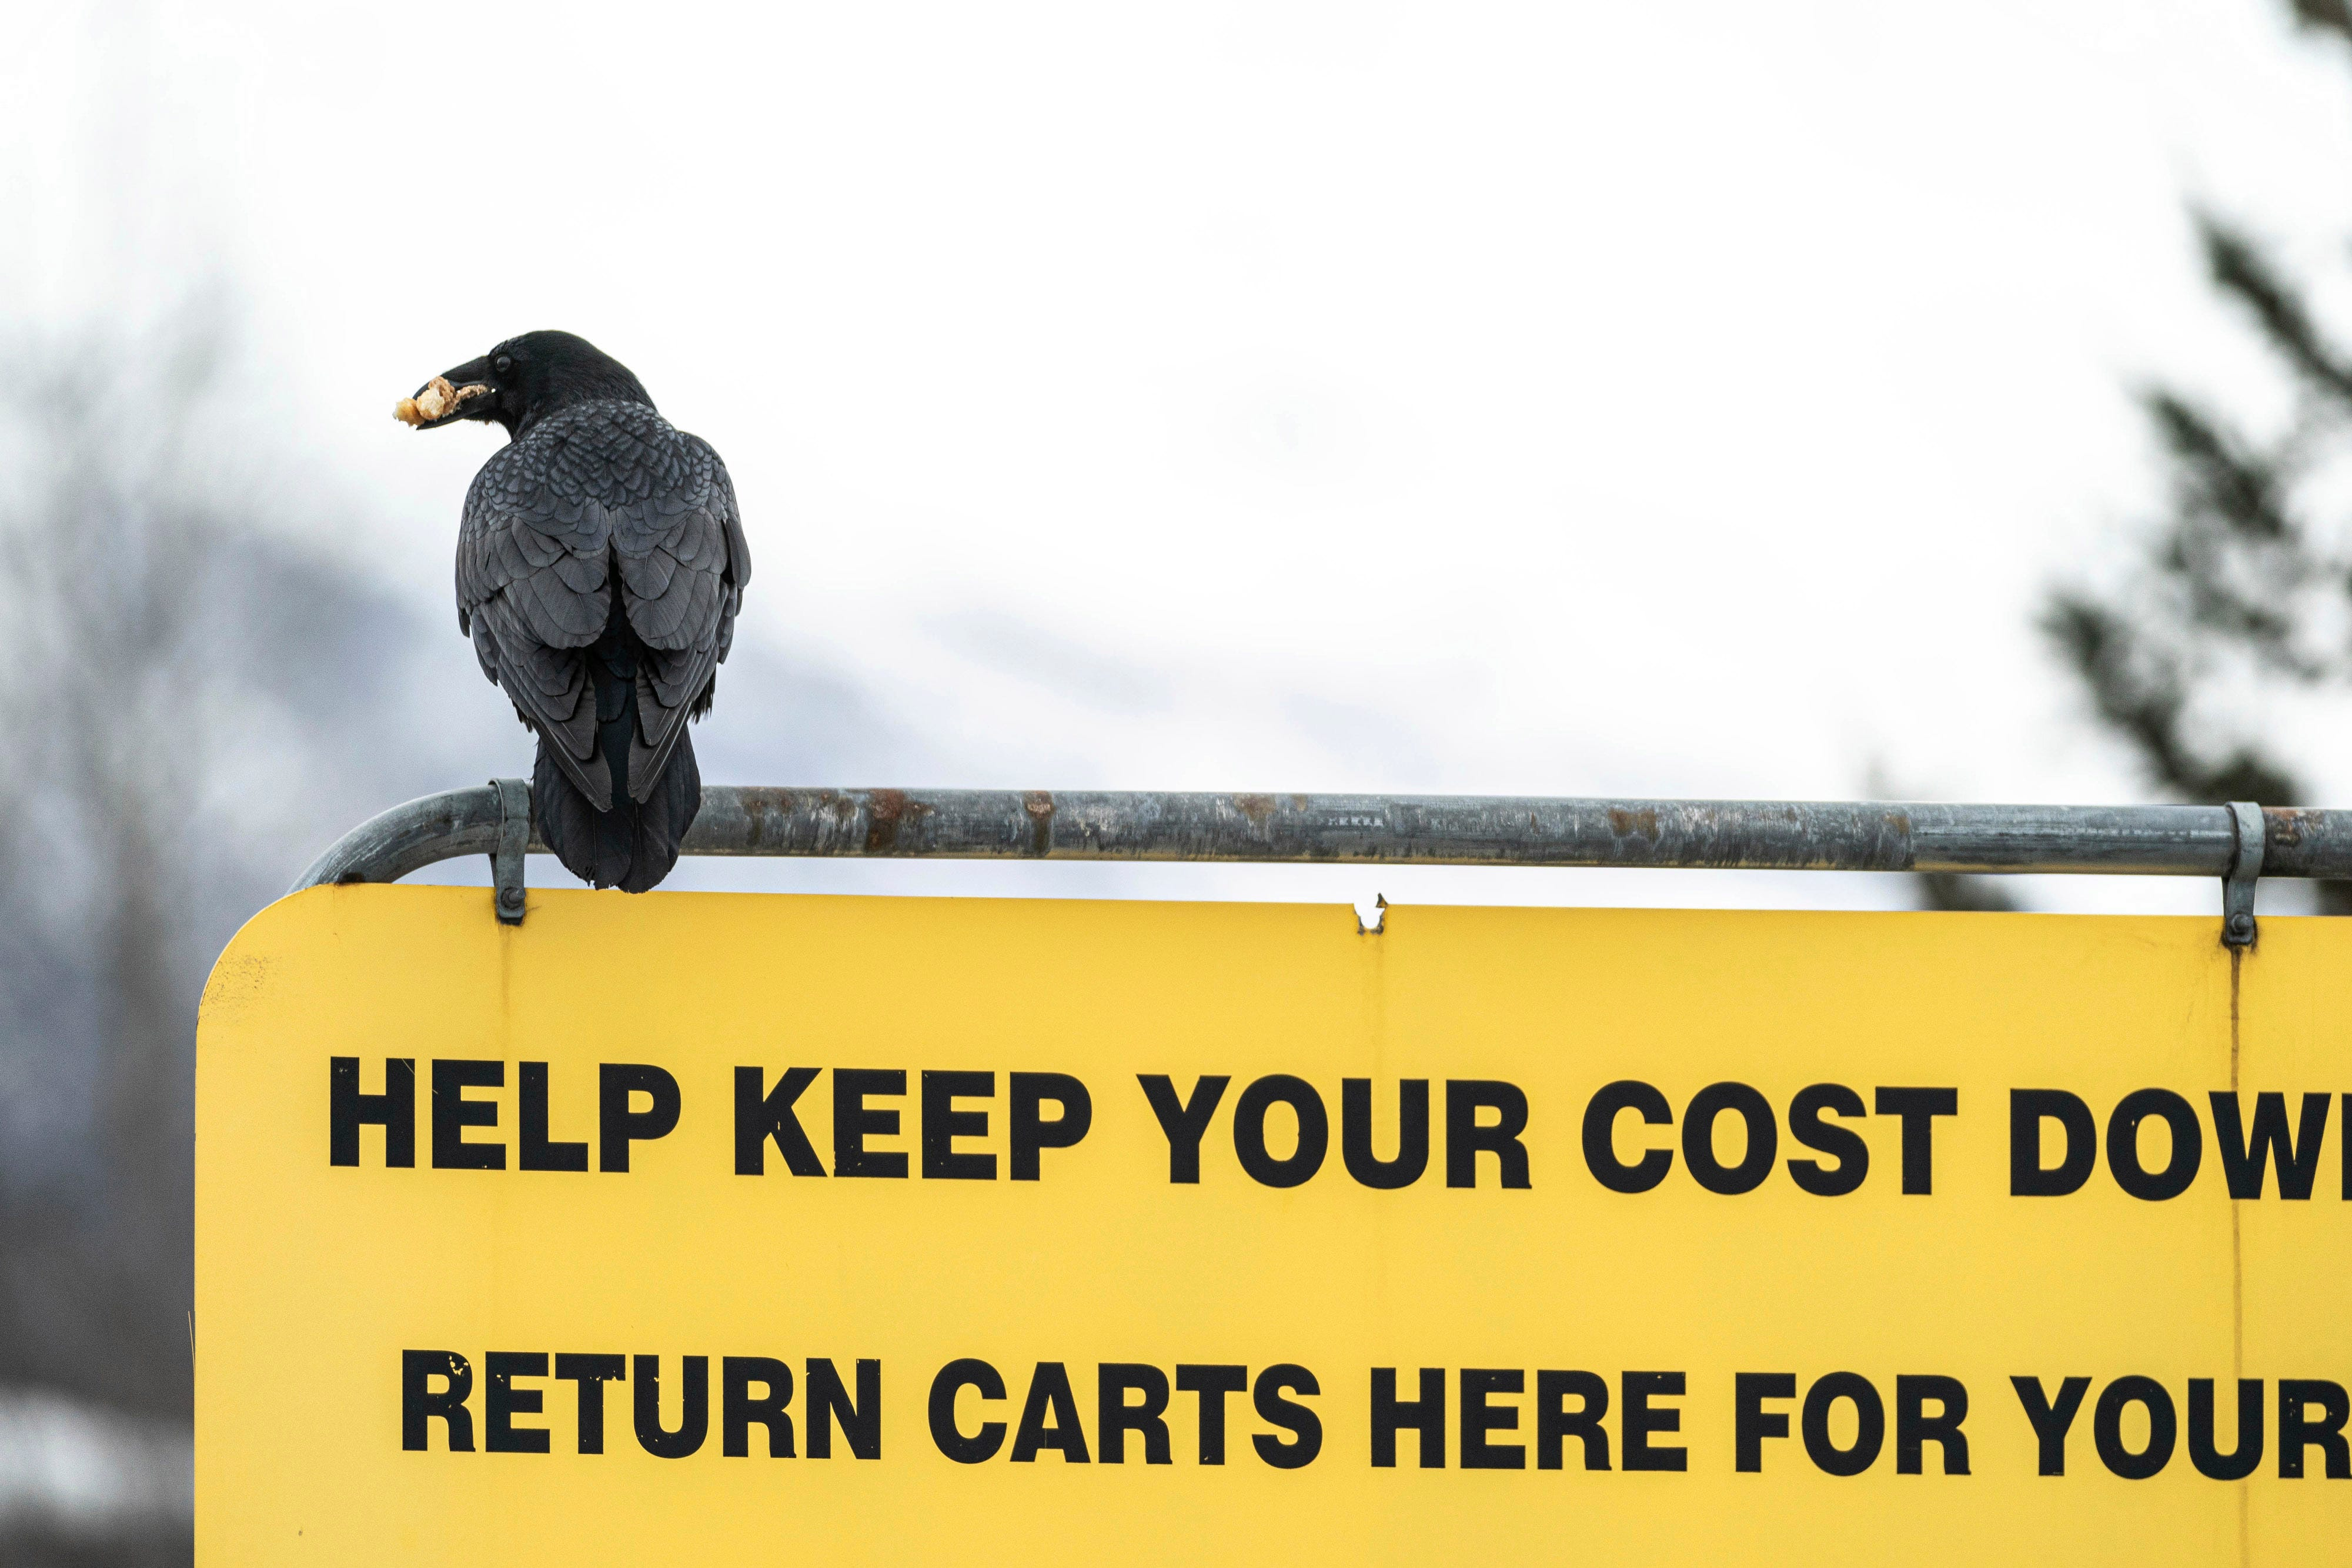 Some Alaska Costco shoppers say ravens steal their groceries 1